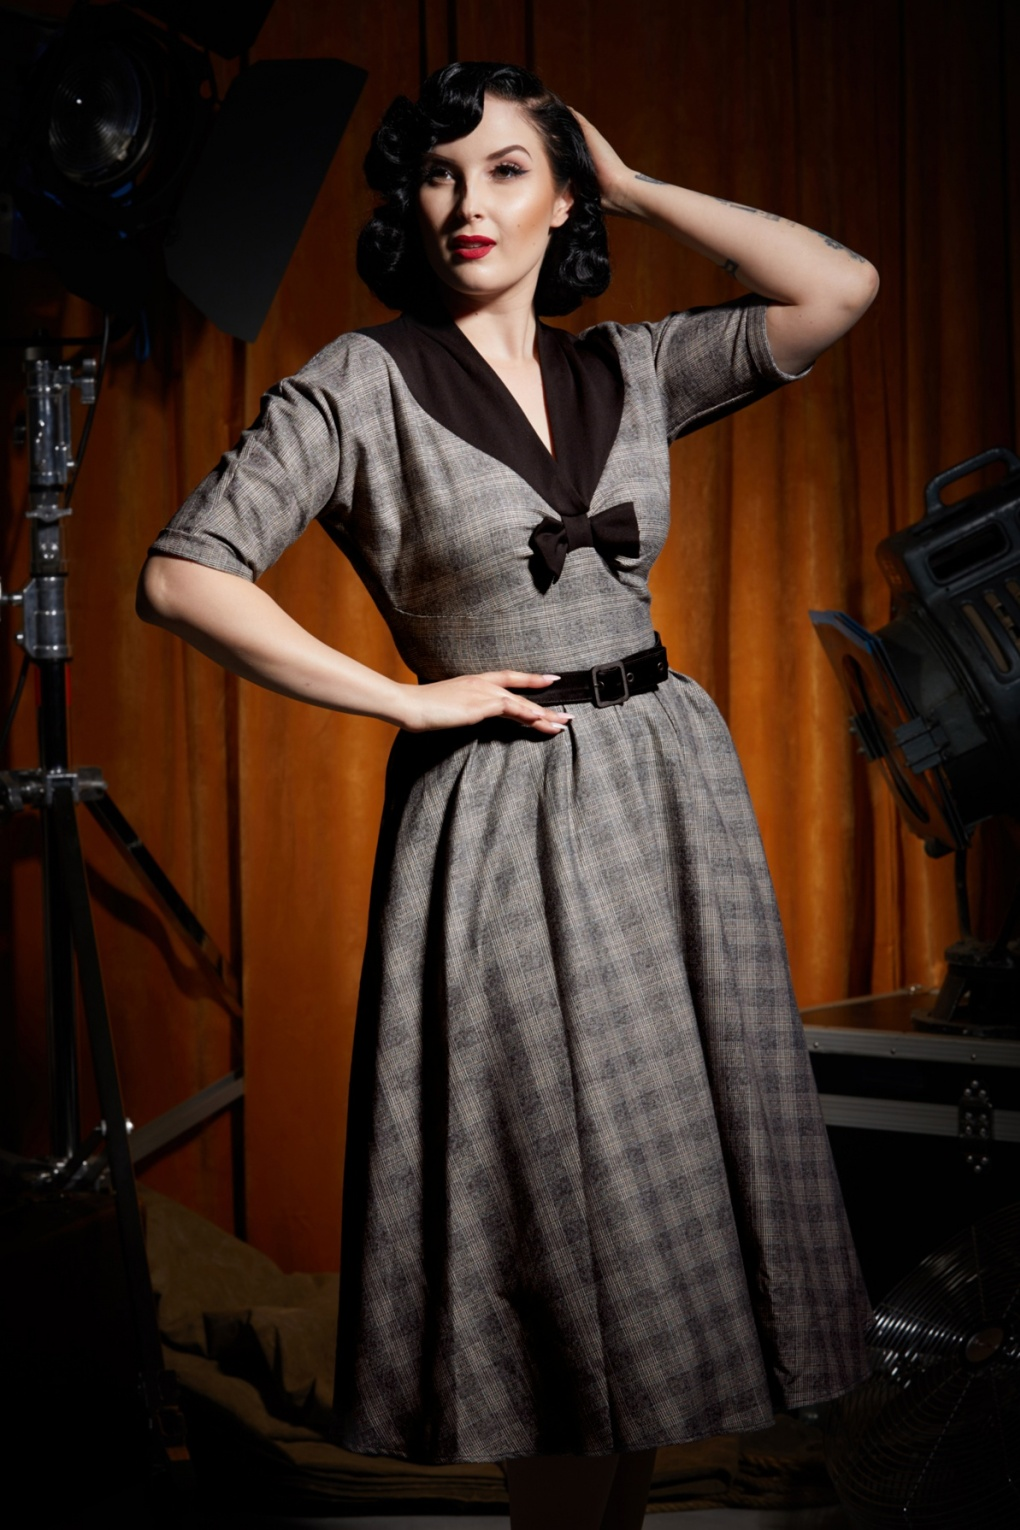 1950s Housewife Dress   50s Day Dresses 50s Maeby Lou Dolman Swing Dress in Grey and Black £97.91 AT vintagedancer.com